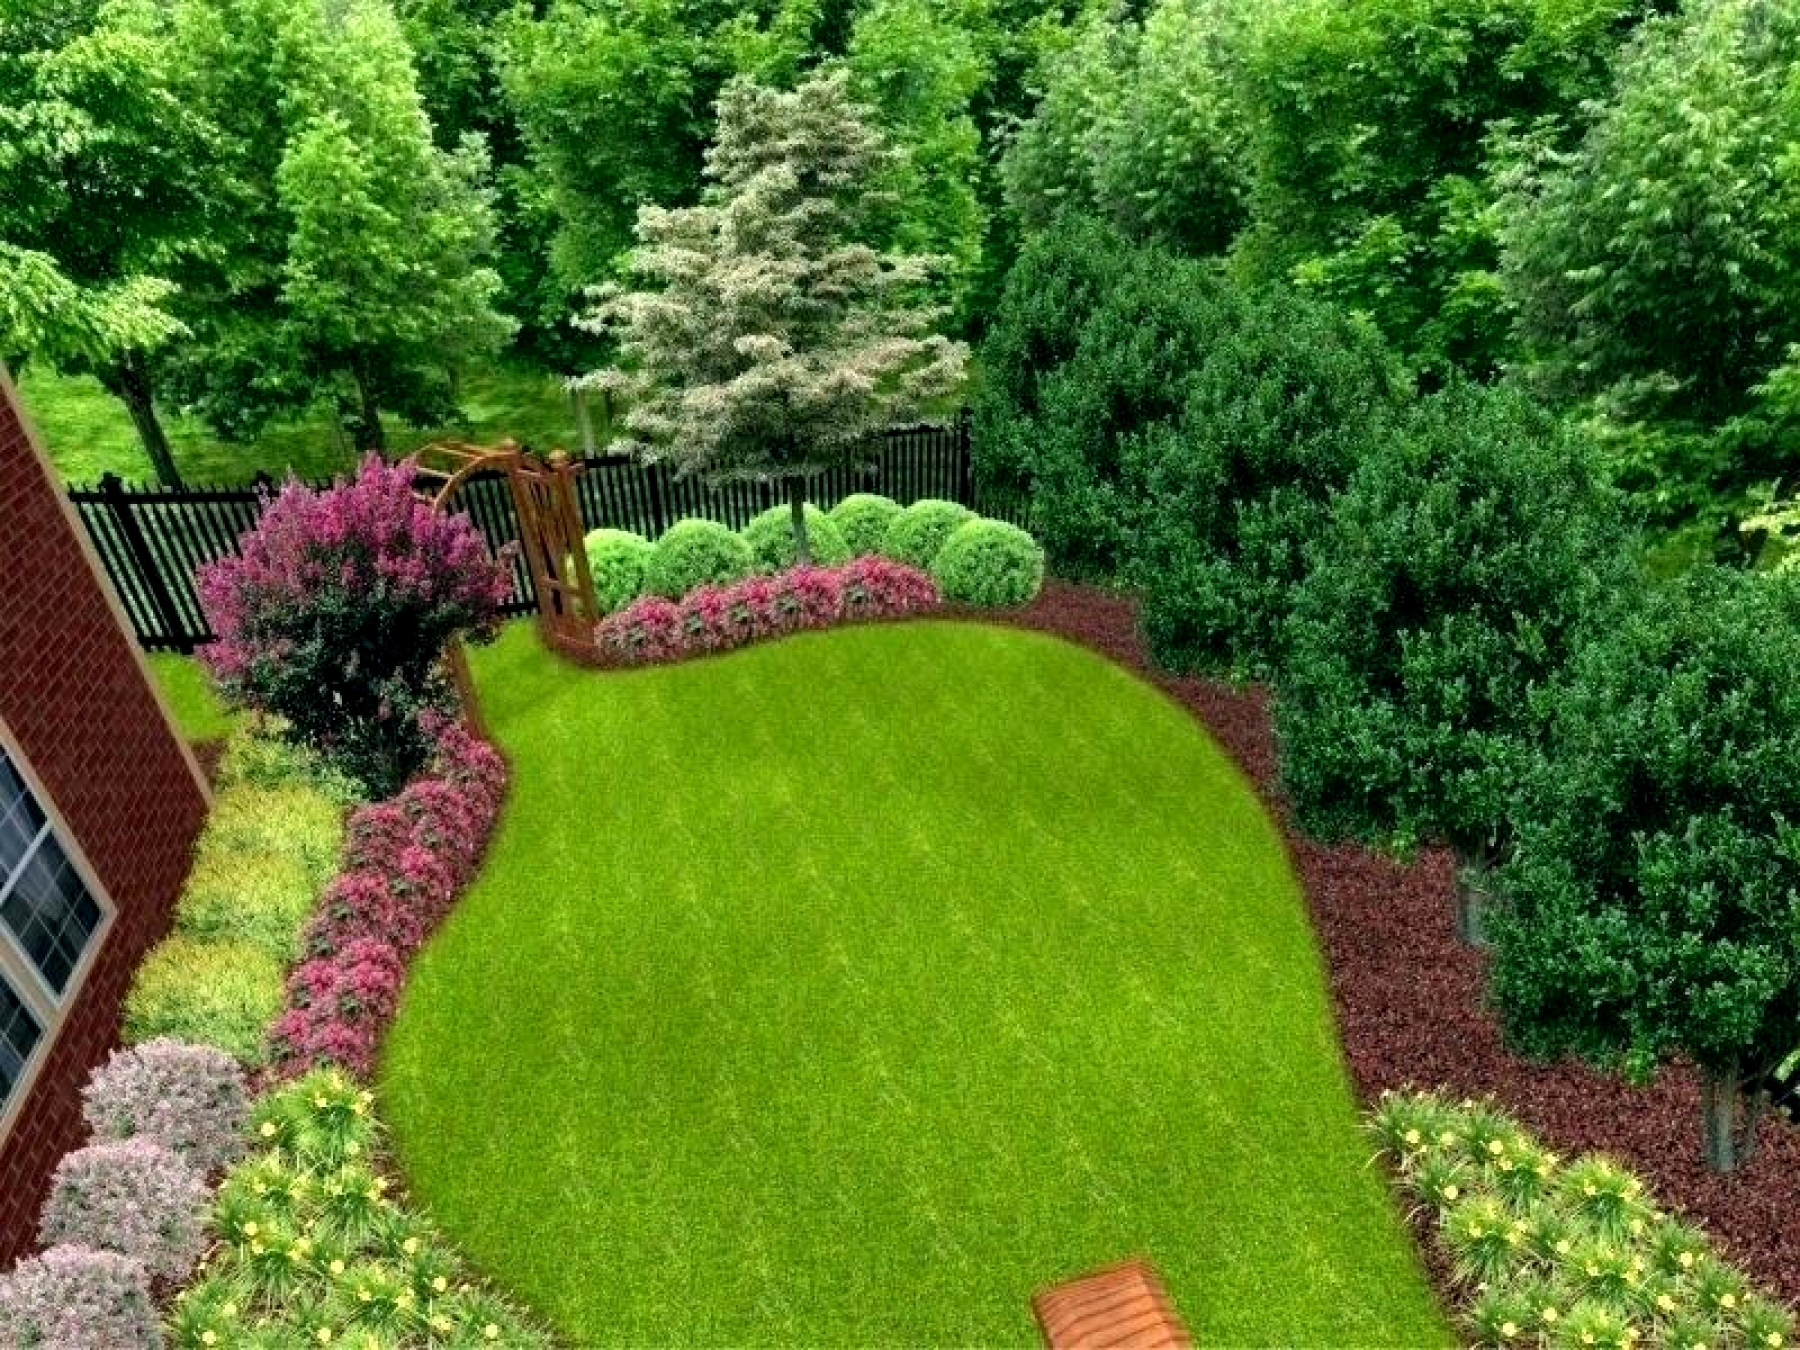 Backyard Privacy Landscaping Ideas Take The Scenic Route regarding 11 Clever Initiatives of How to Build Landscaping Ideas For Backyard Privacy